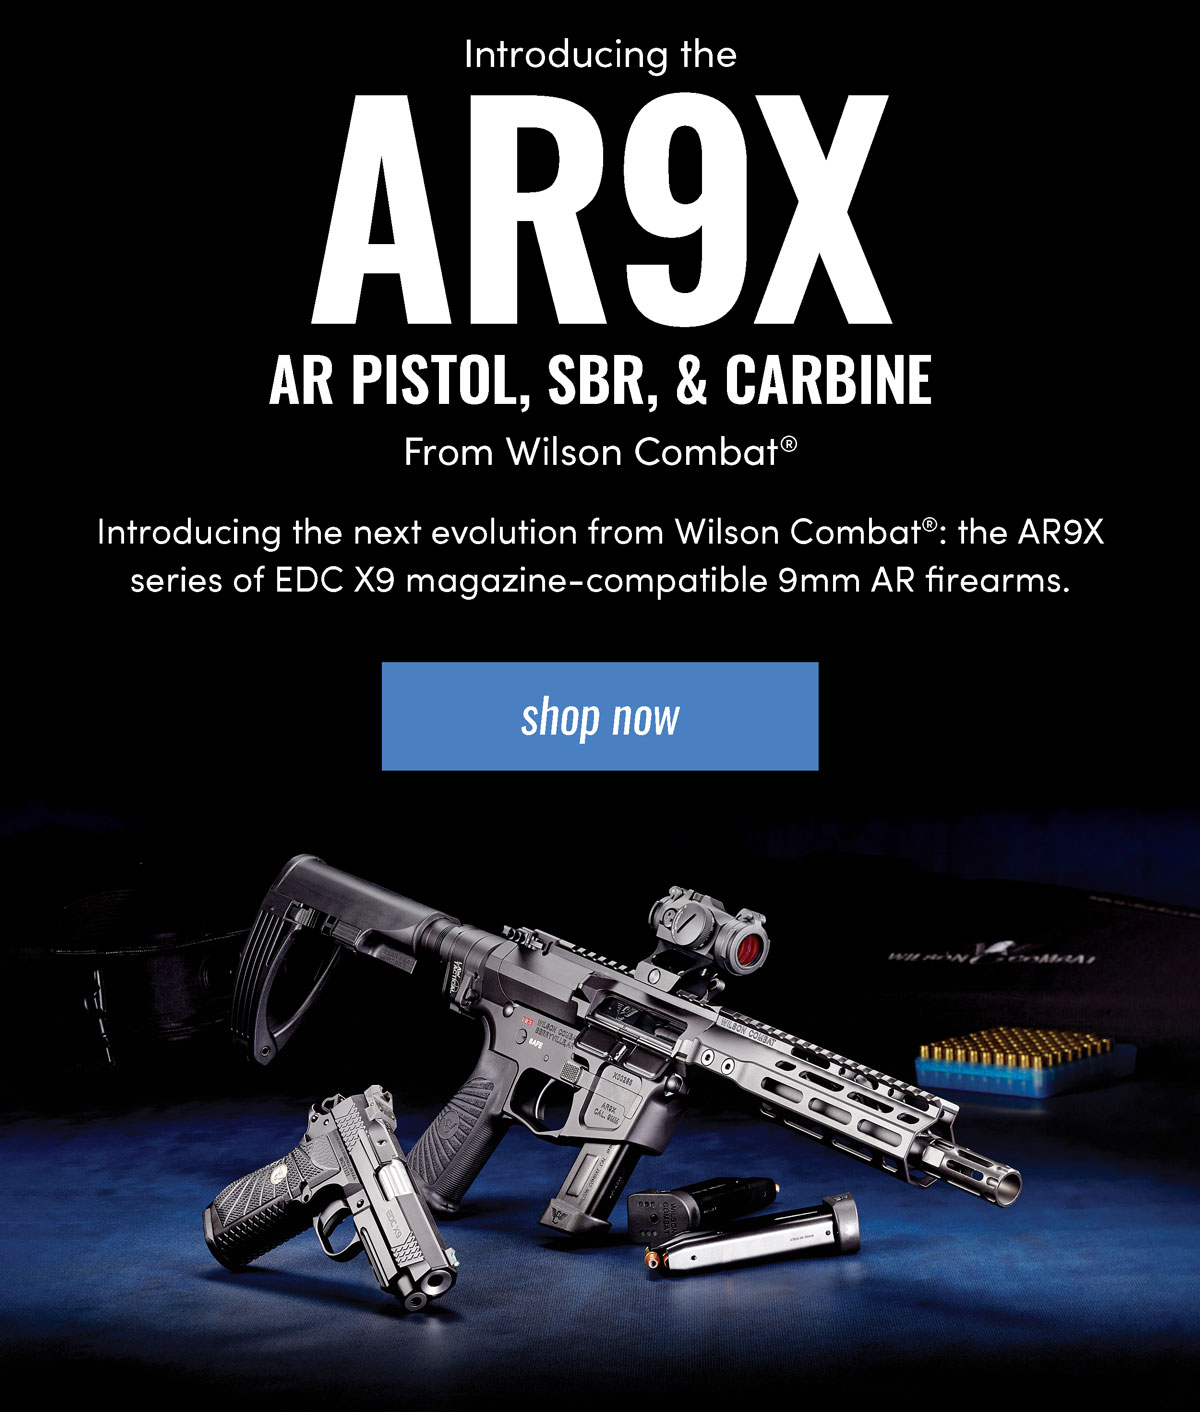 AR9X AR pistol, SBR, & Carbine, Introducing the next evolution from Wilson Combat: the AR9X series of E.D.C. X9 magazine-compatible 9mm AR firearms., shop now